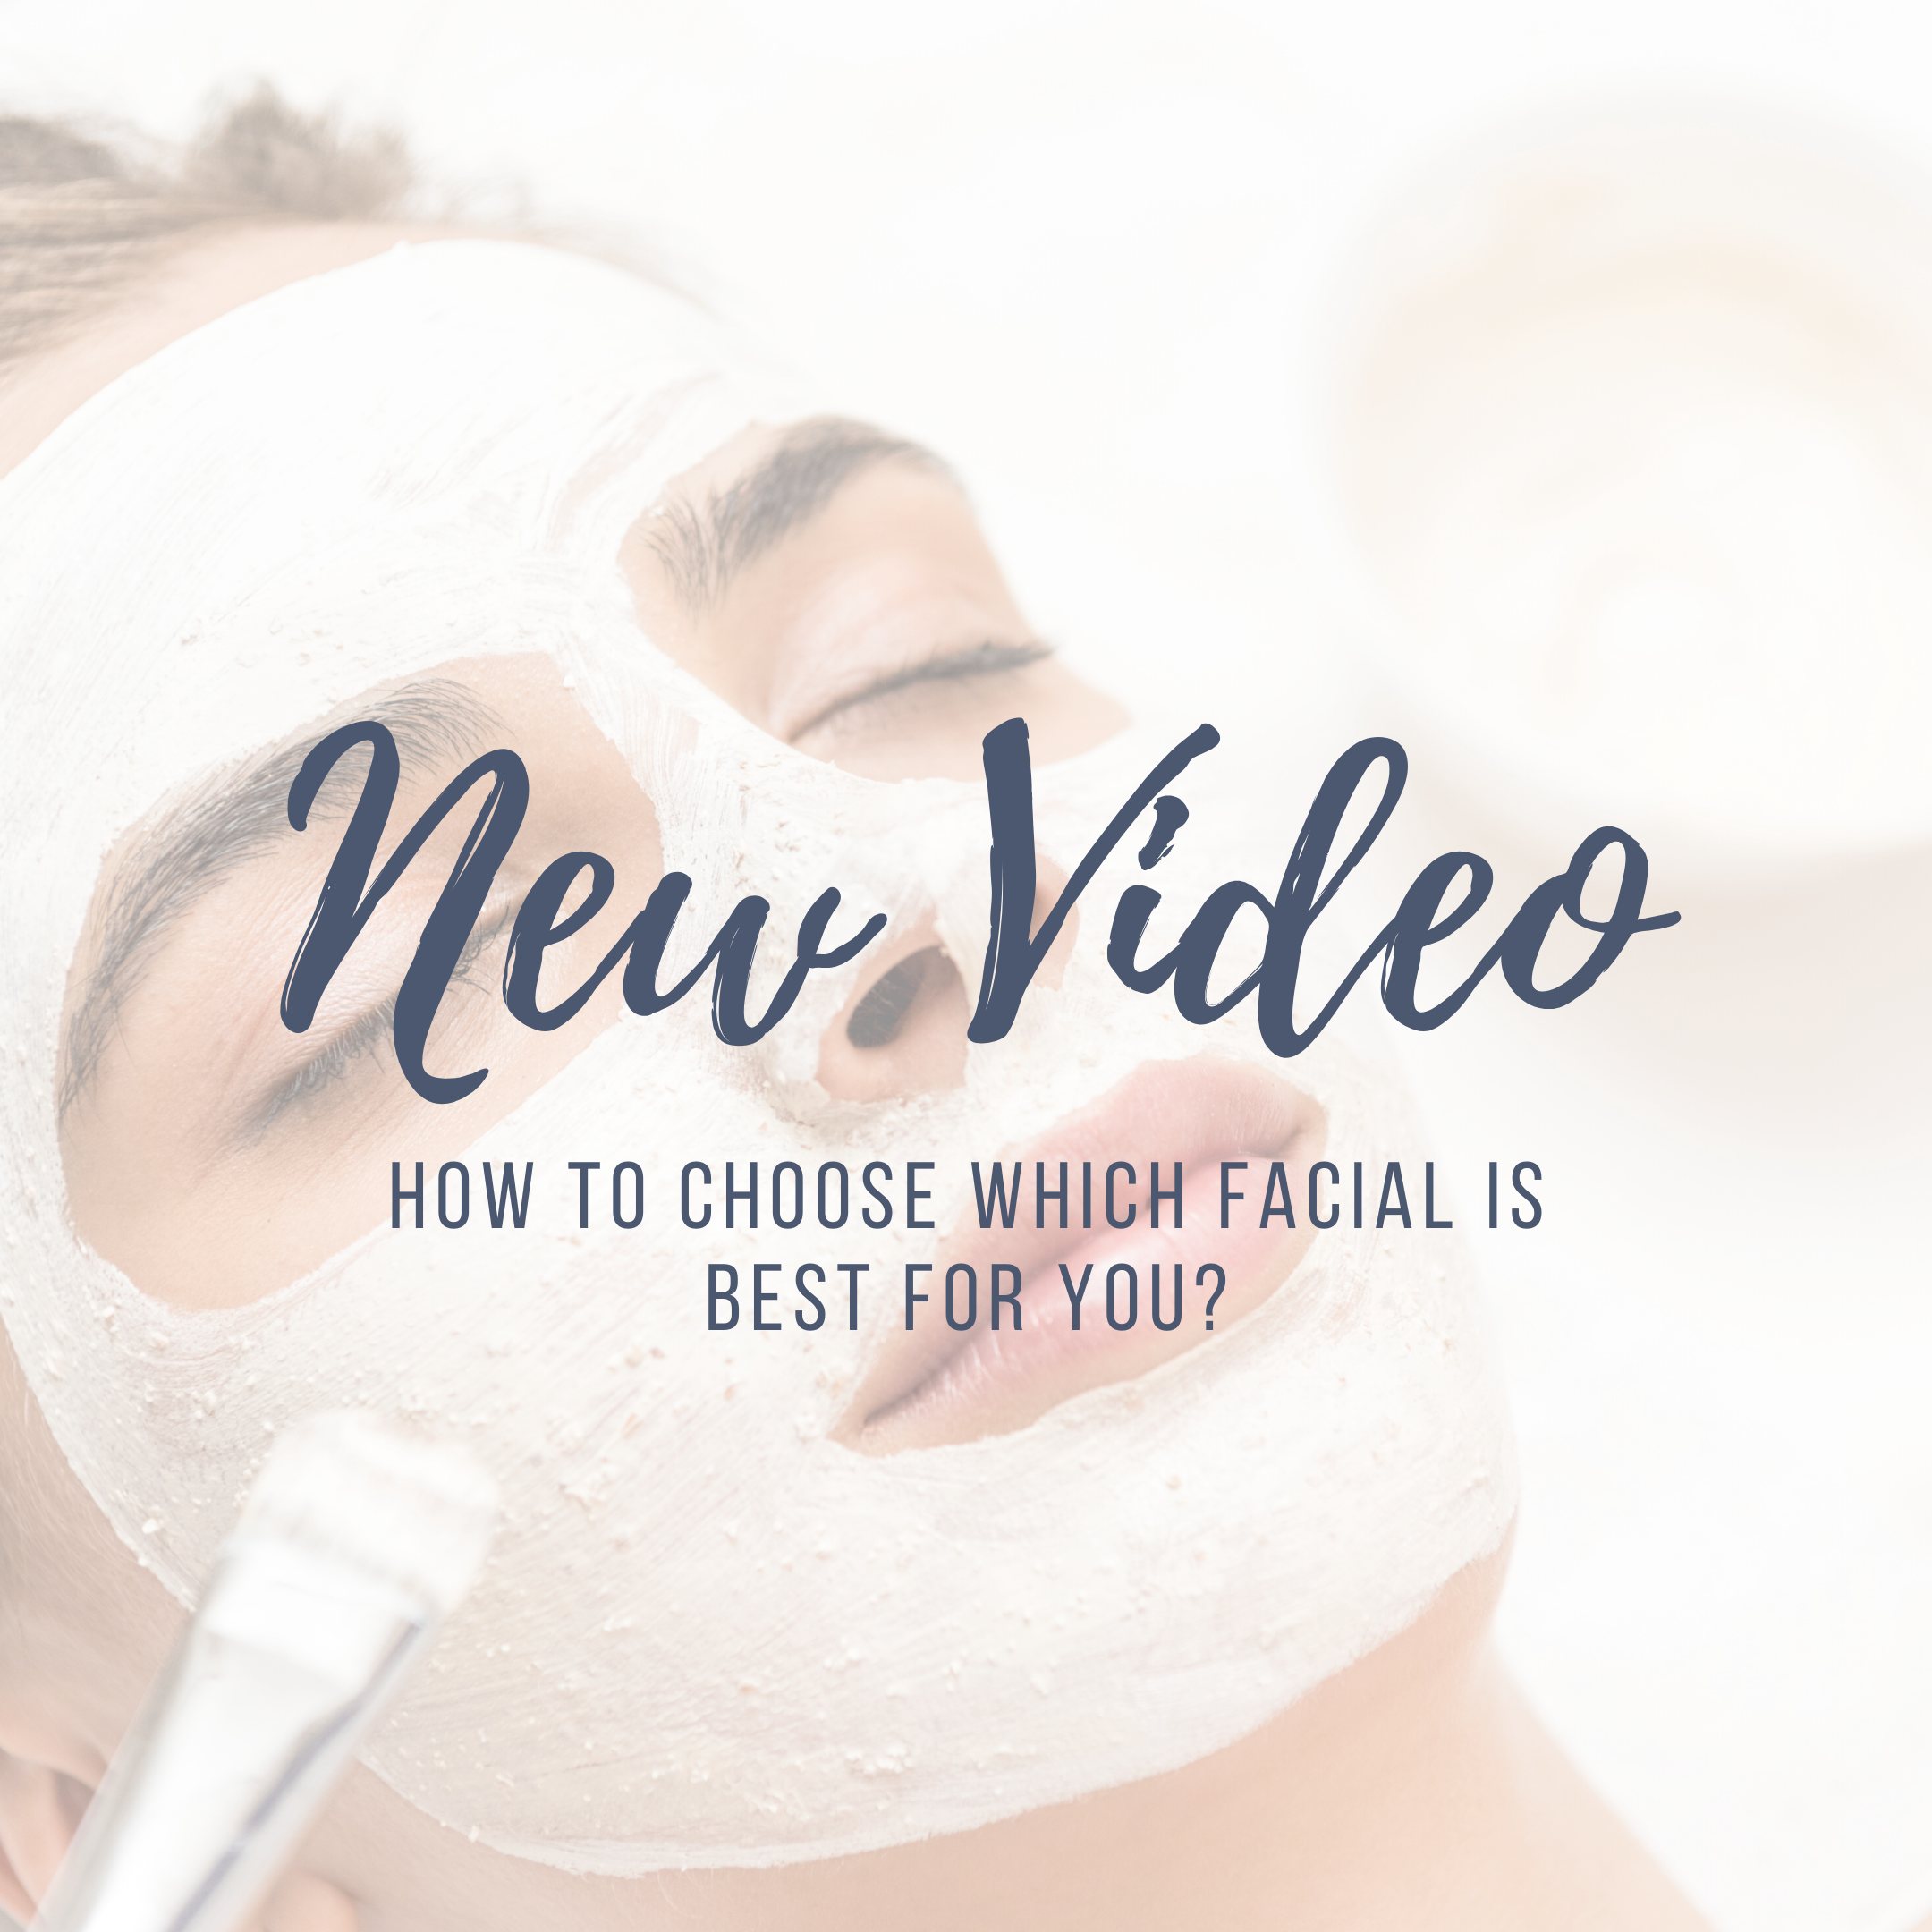 New Video: How to choose which facial is best for you?